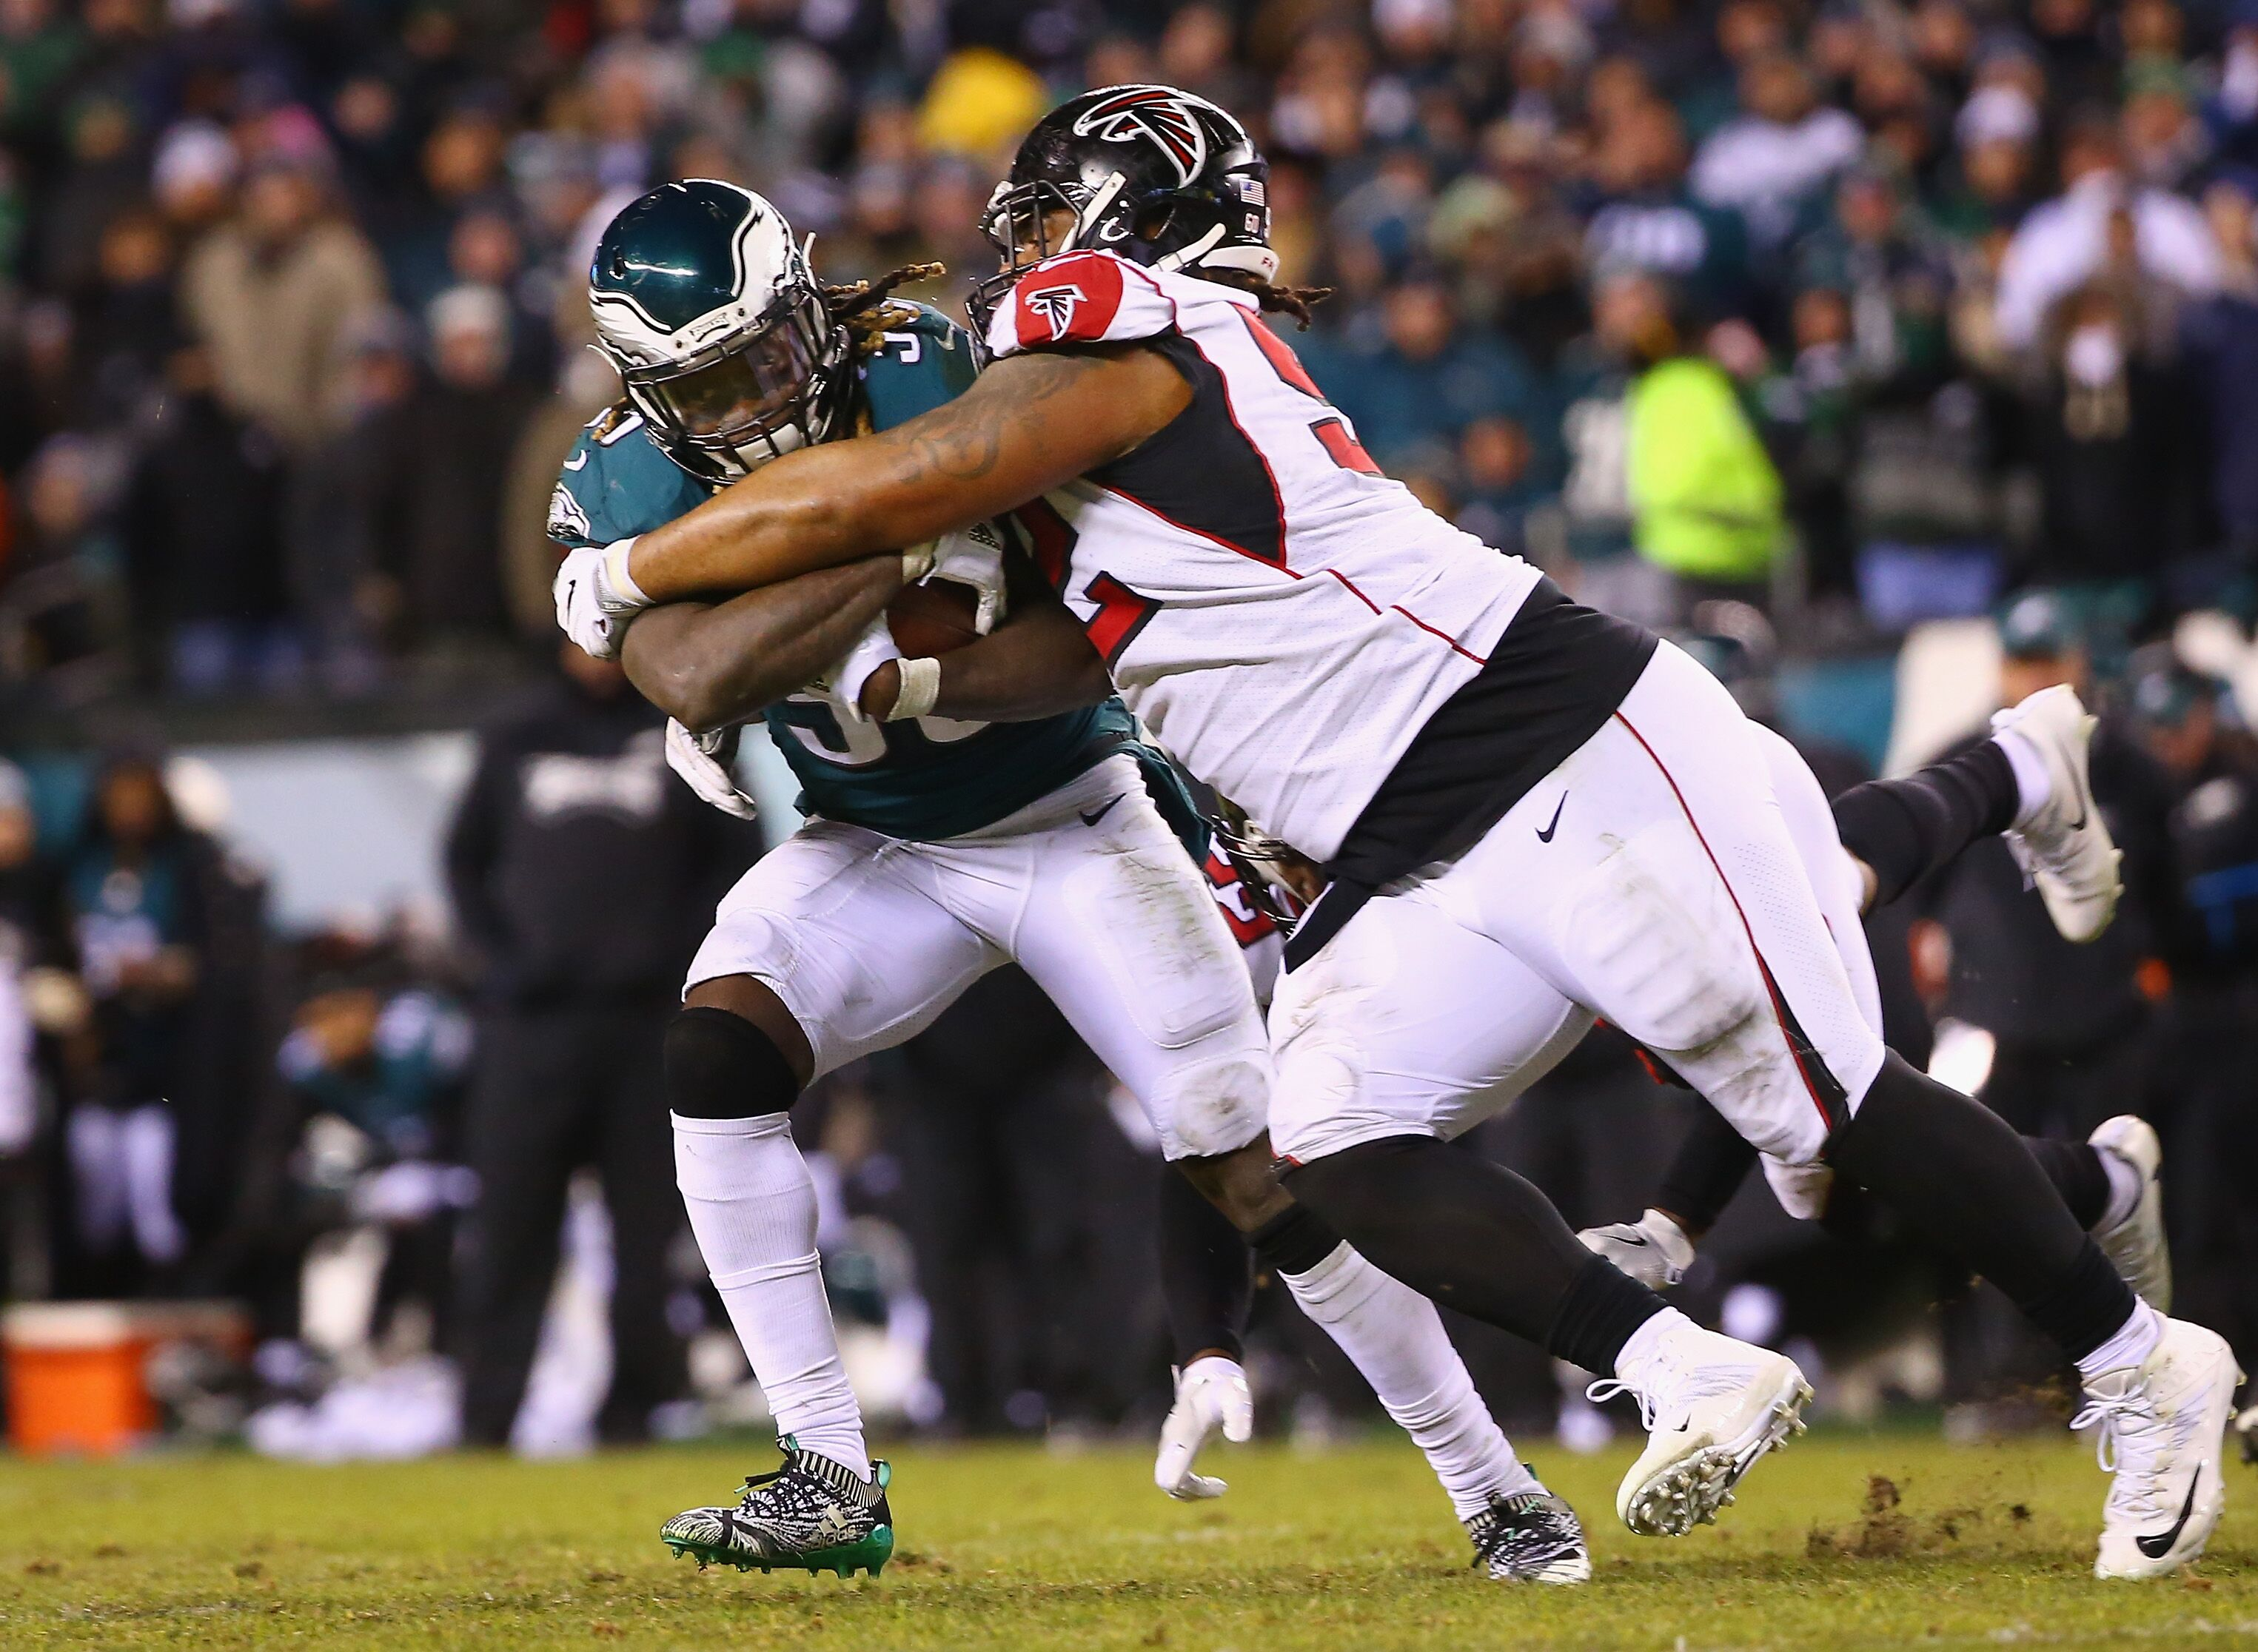 904621346-divisional-round-atlanta-falcons-v-philadelphia-eagles.jpg